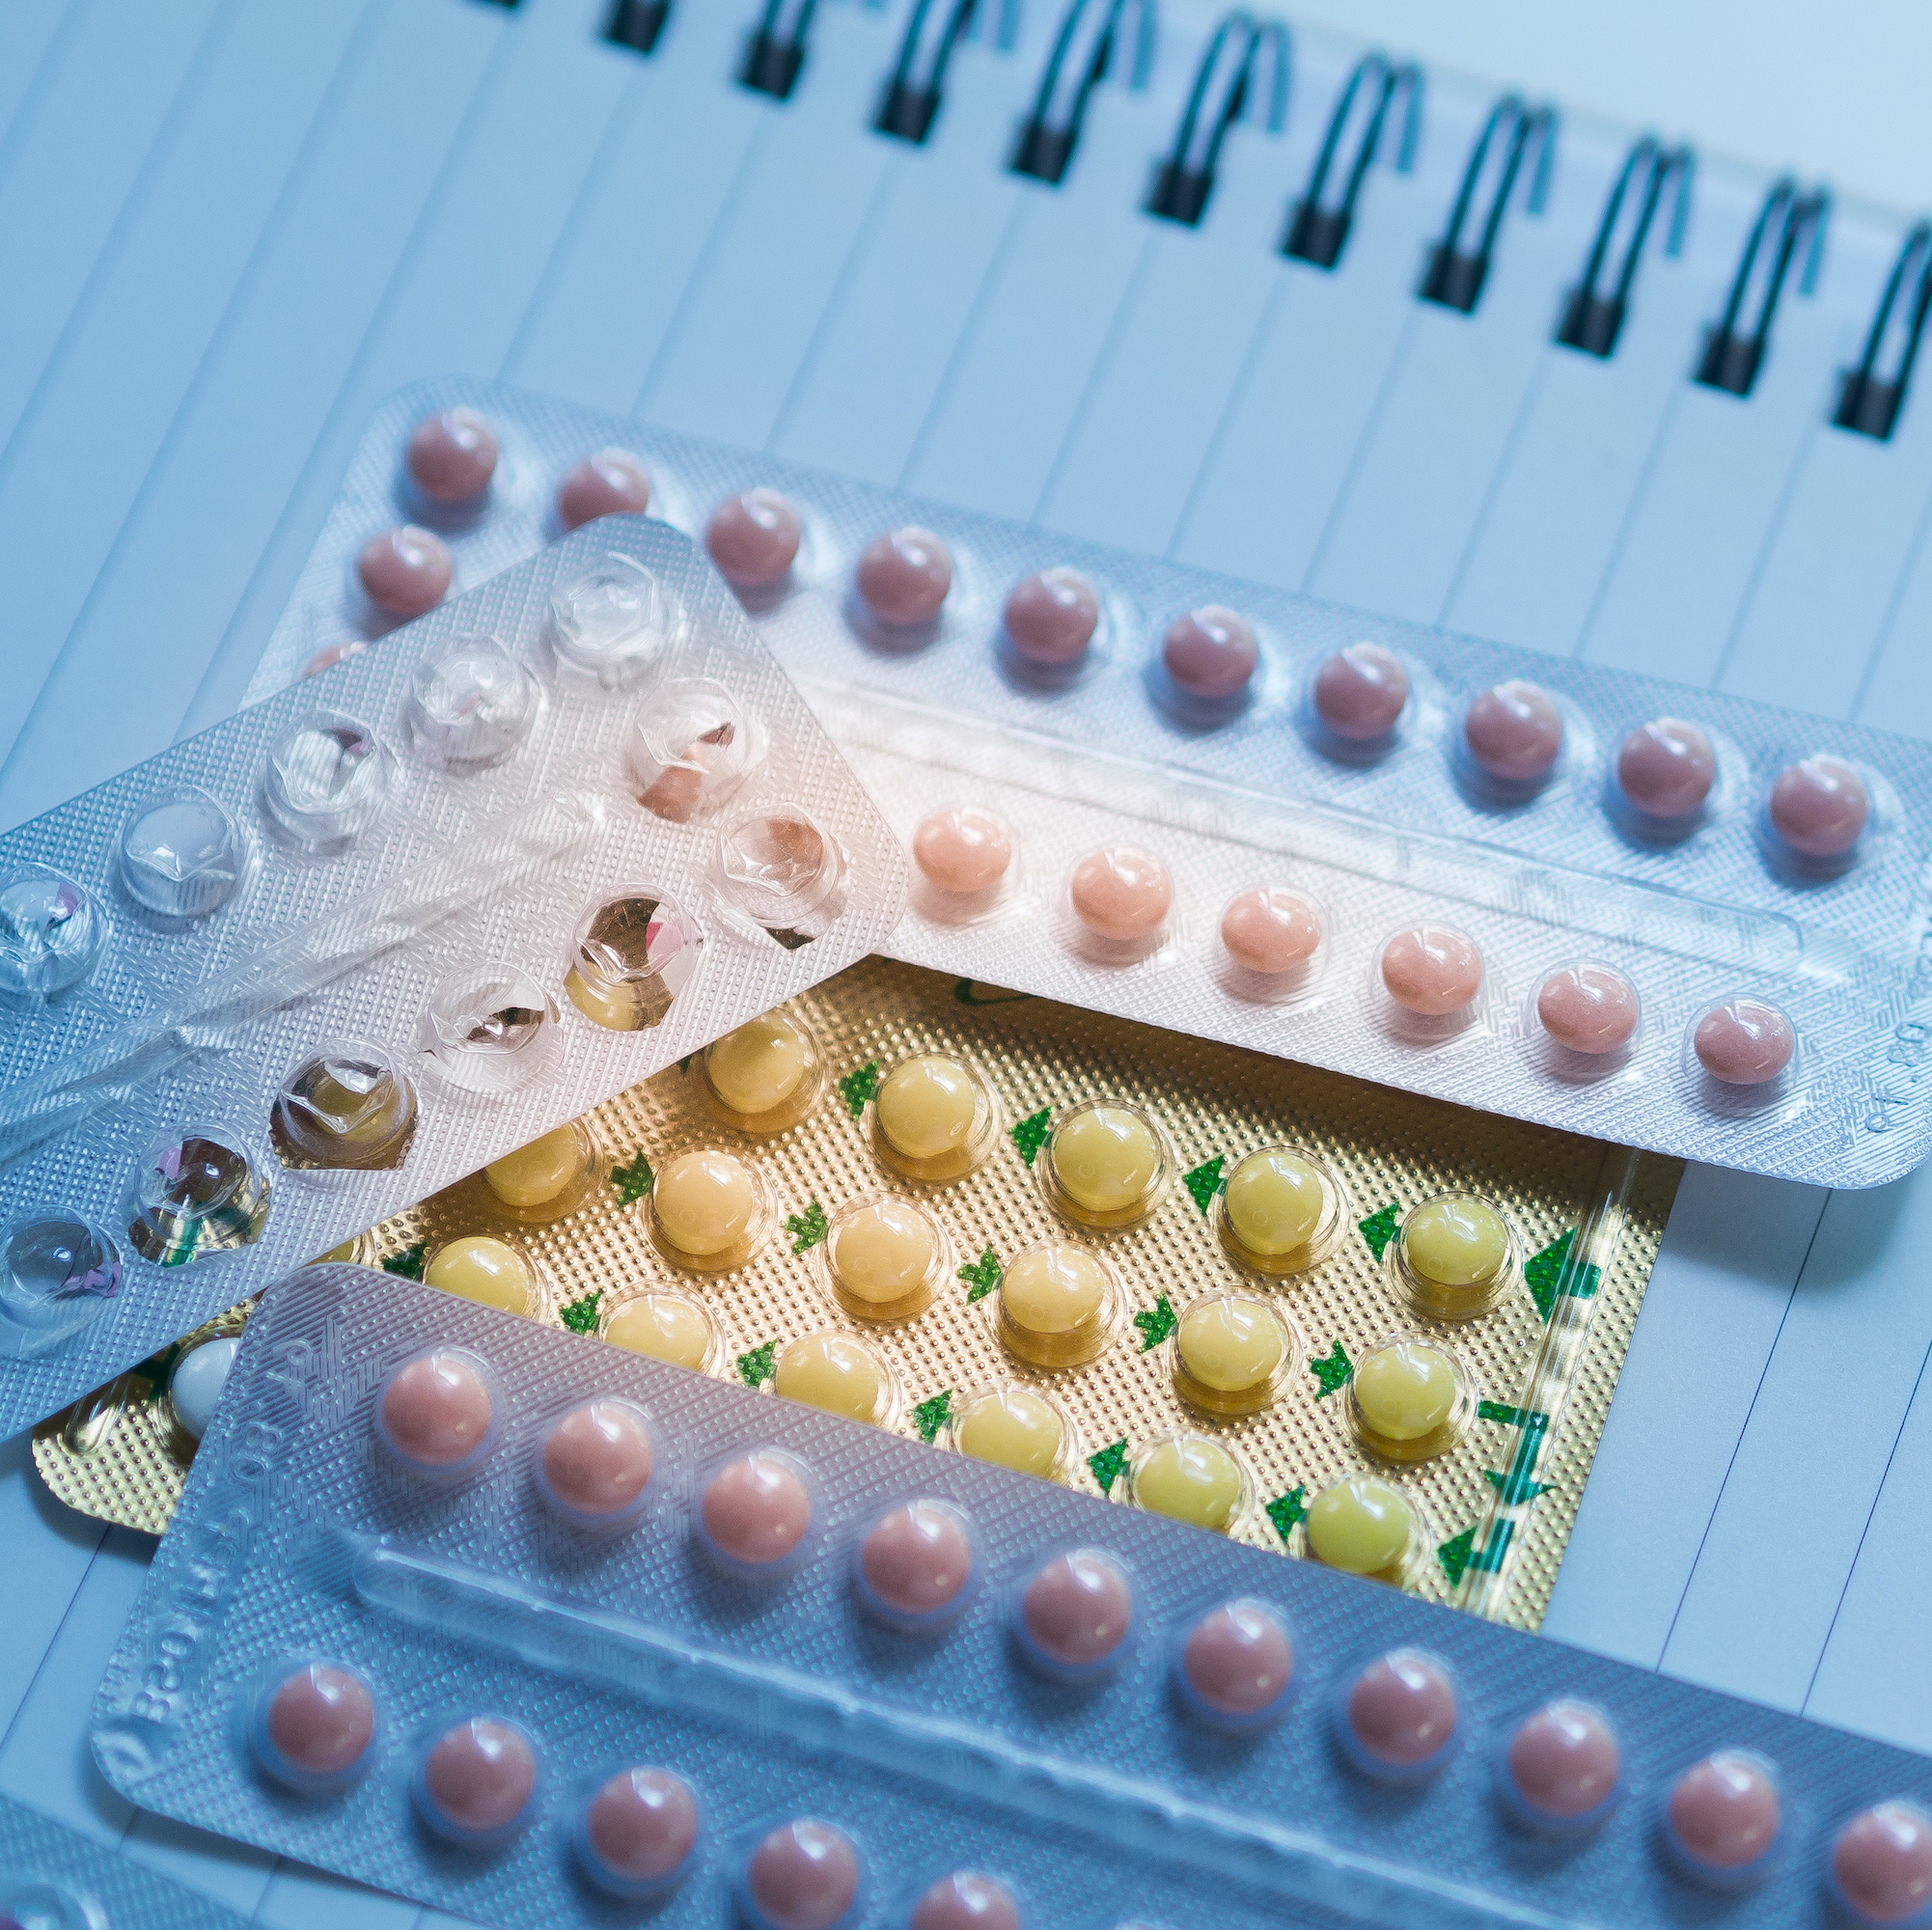 Infectious Diseases News: Hormonal Contraceptives, Genital Tract Infections Influence Cervical Immunology